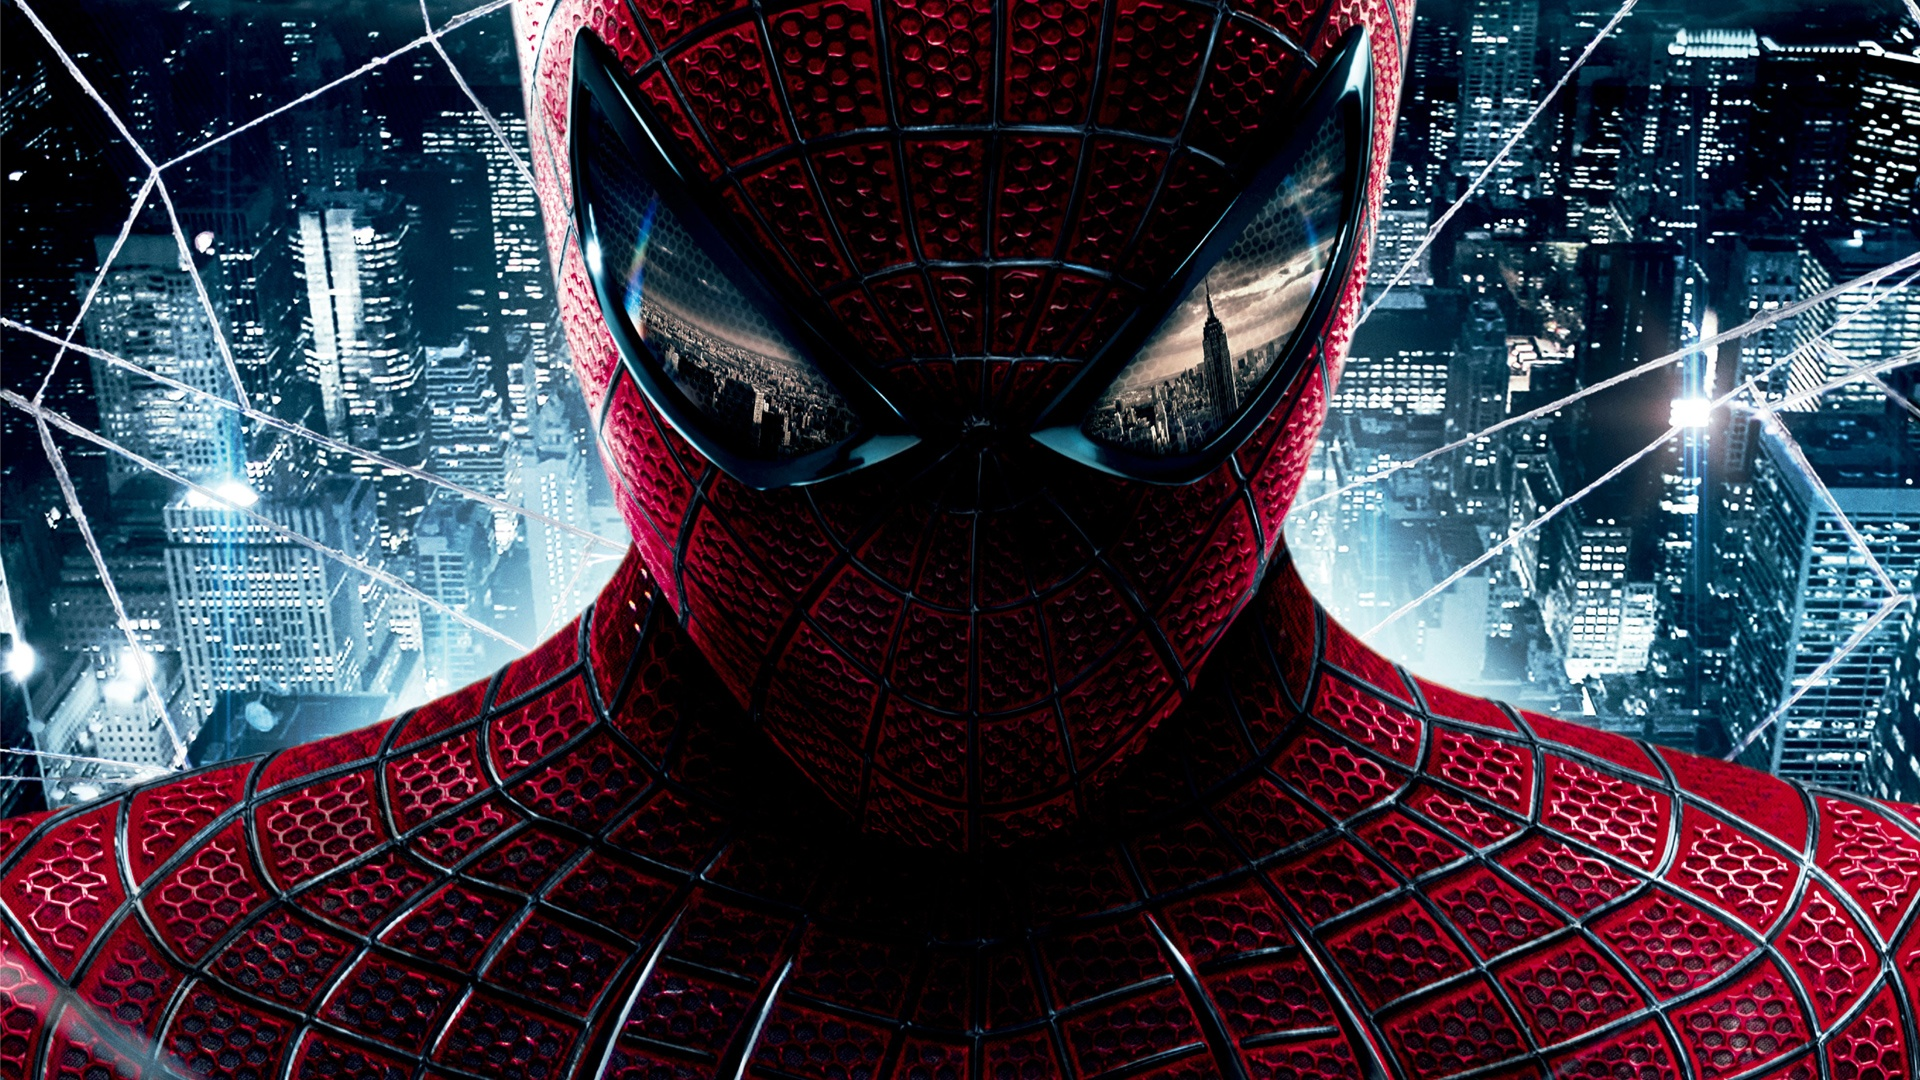 Amazing Spider Man New Wallpapers HD 1080p HDTV 1920x1080